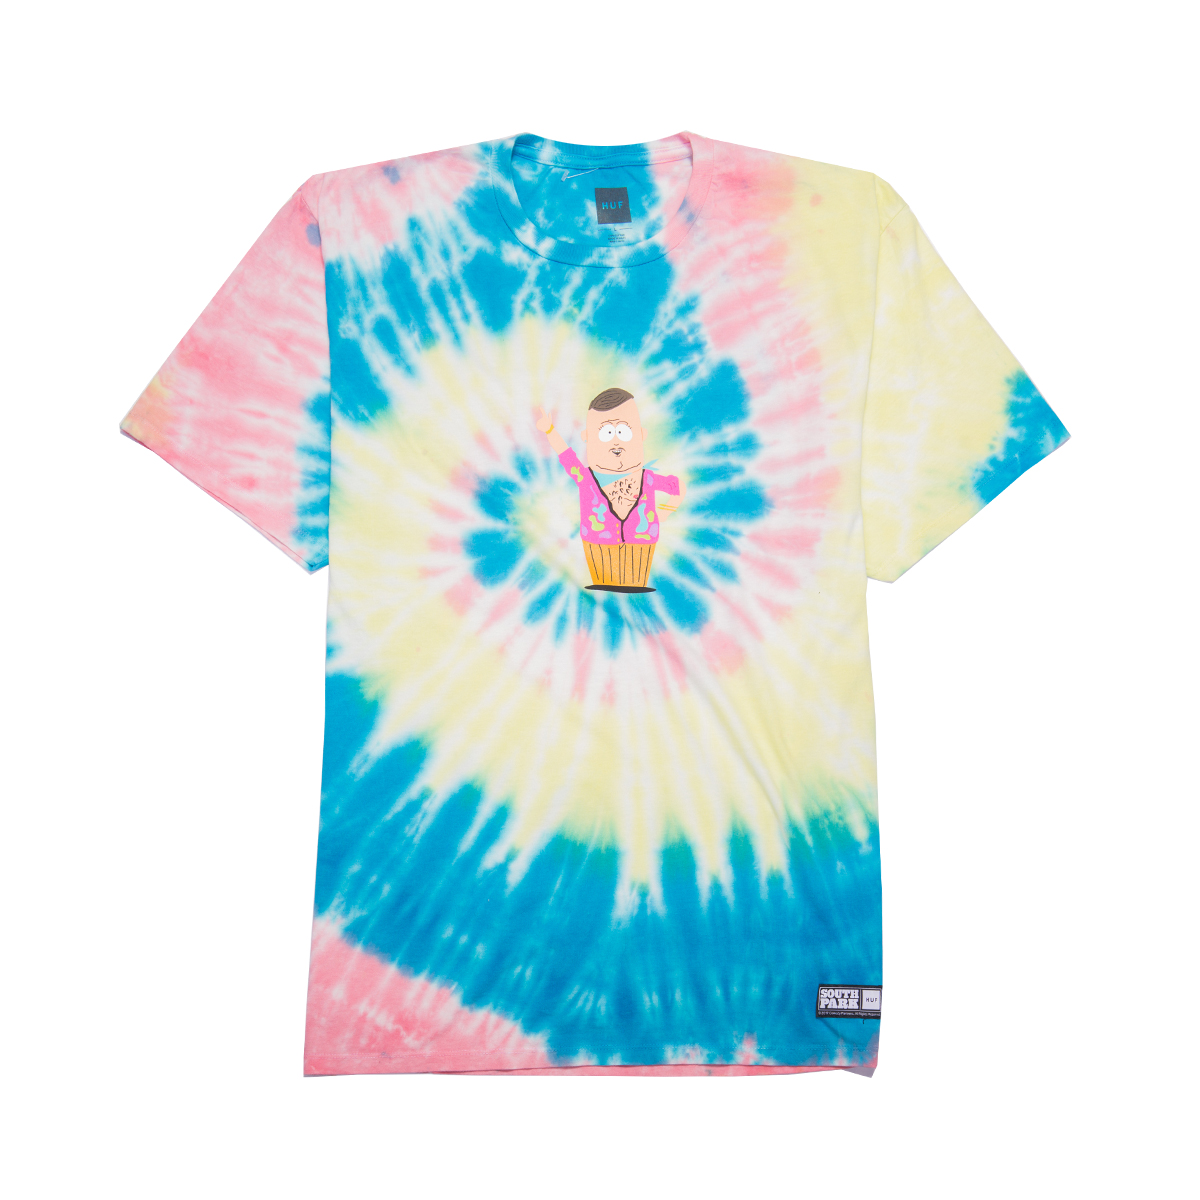 Koszulka HUF x South Park Big Gay Al Tie Dye Multicolor